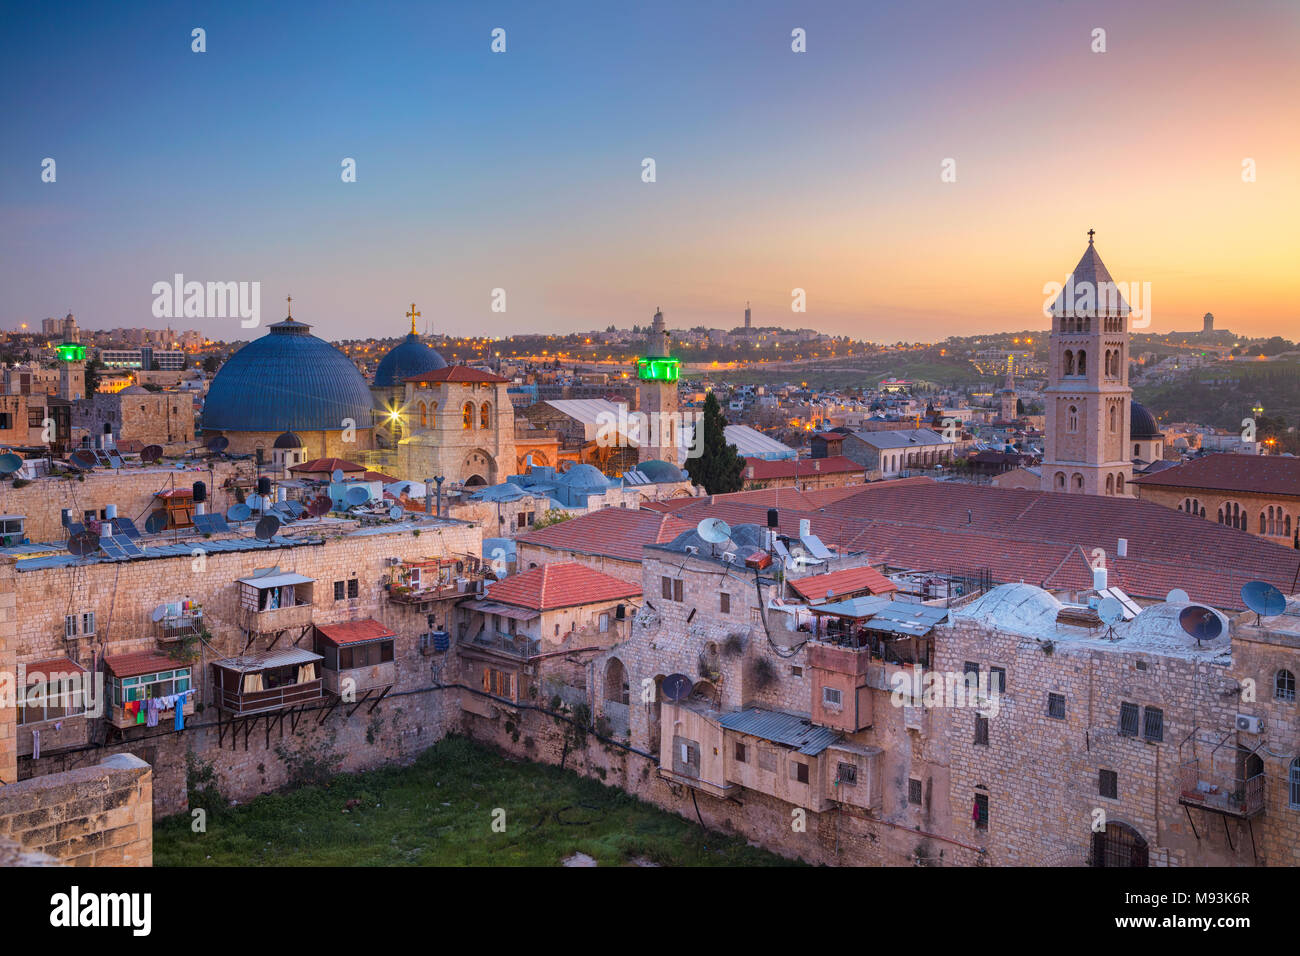 Jerusalem. Cityscape image of old town of Jerusalem, Israel at sunrise. - Stock Image